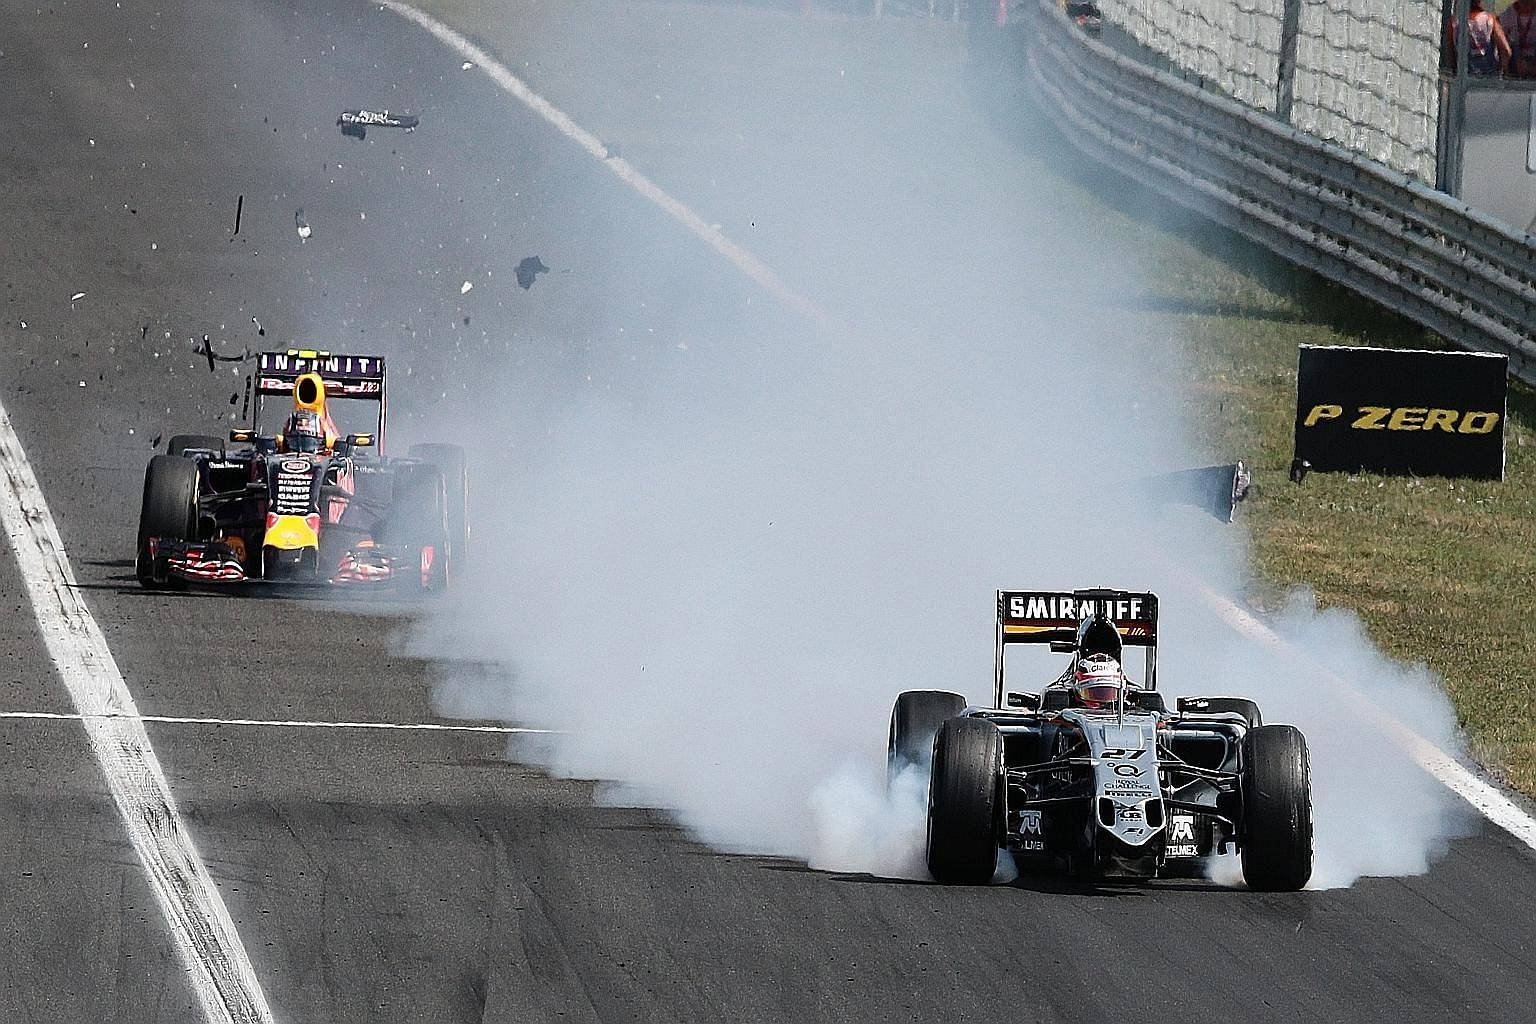 Force India's German driver Nico Huelkenberg (right) struggling to control his car before crashing into the barriers after his front wing broke off along the fastest straight at the Hungaroring. The drivers honoured Jules Bianchi in the perfect way,